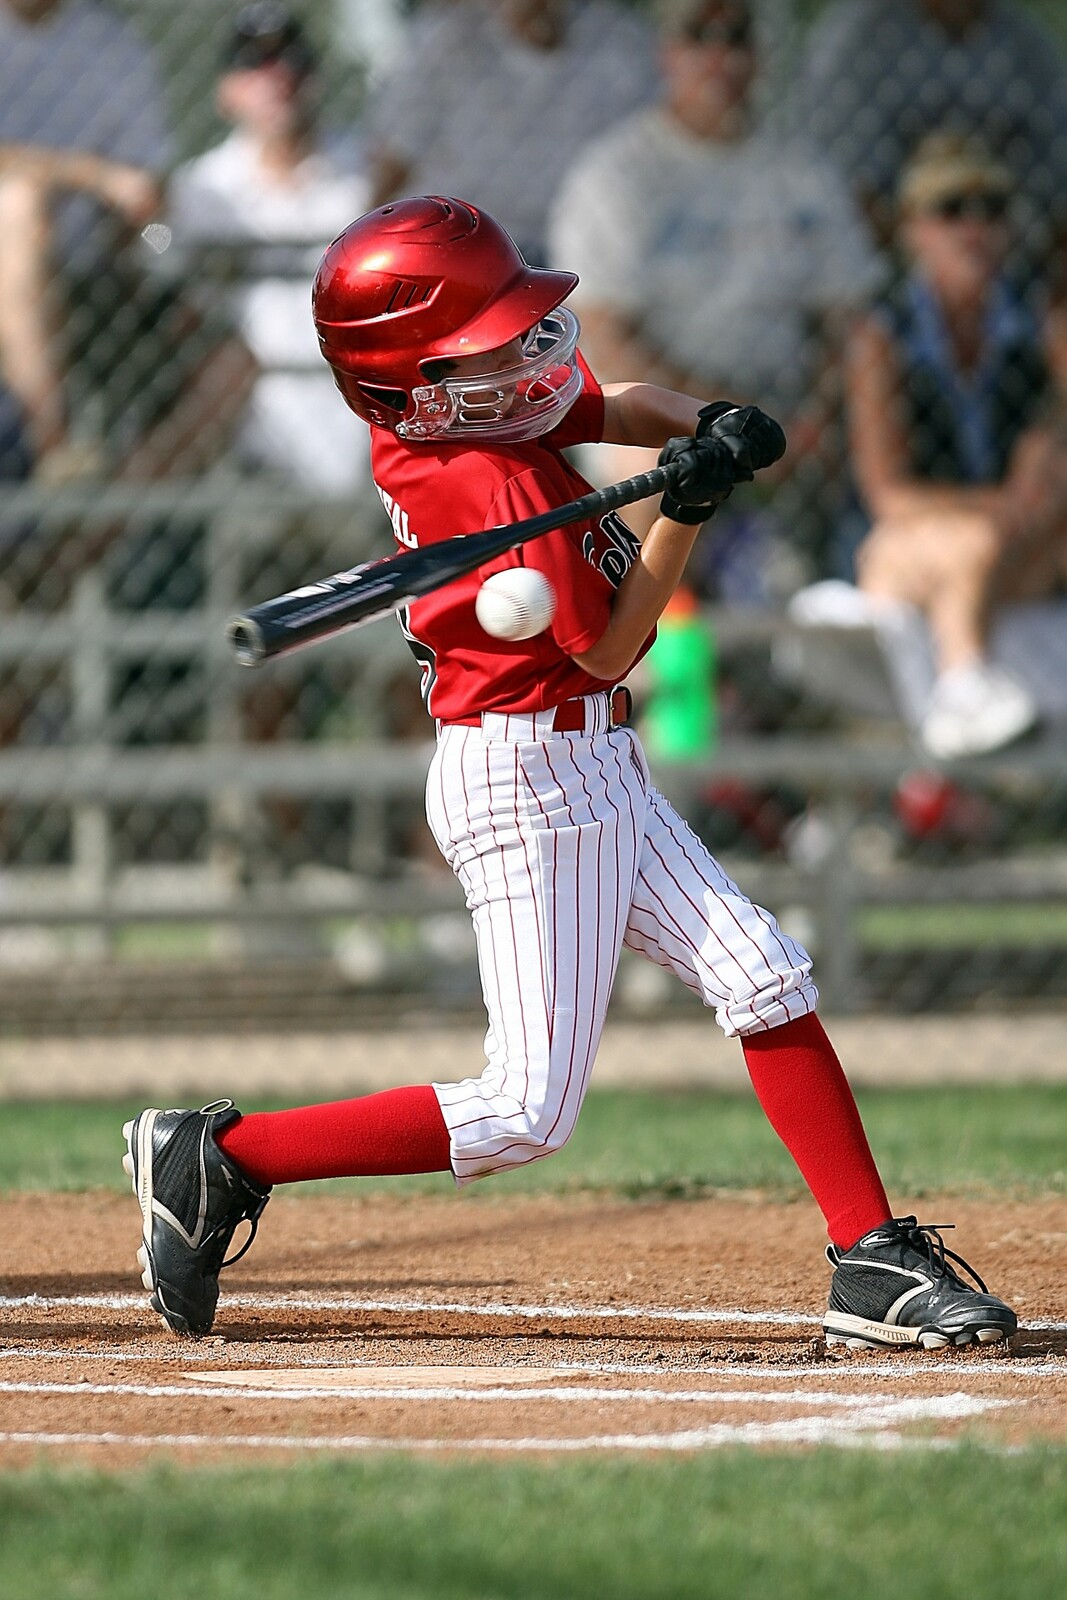 best youth baseball bat choices of 2021